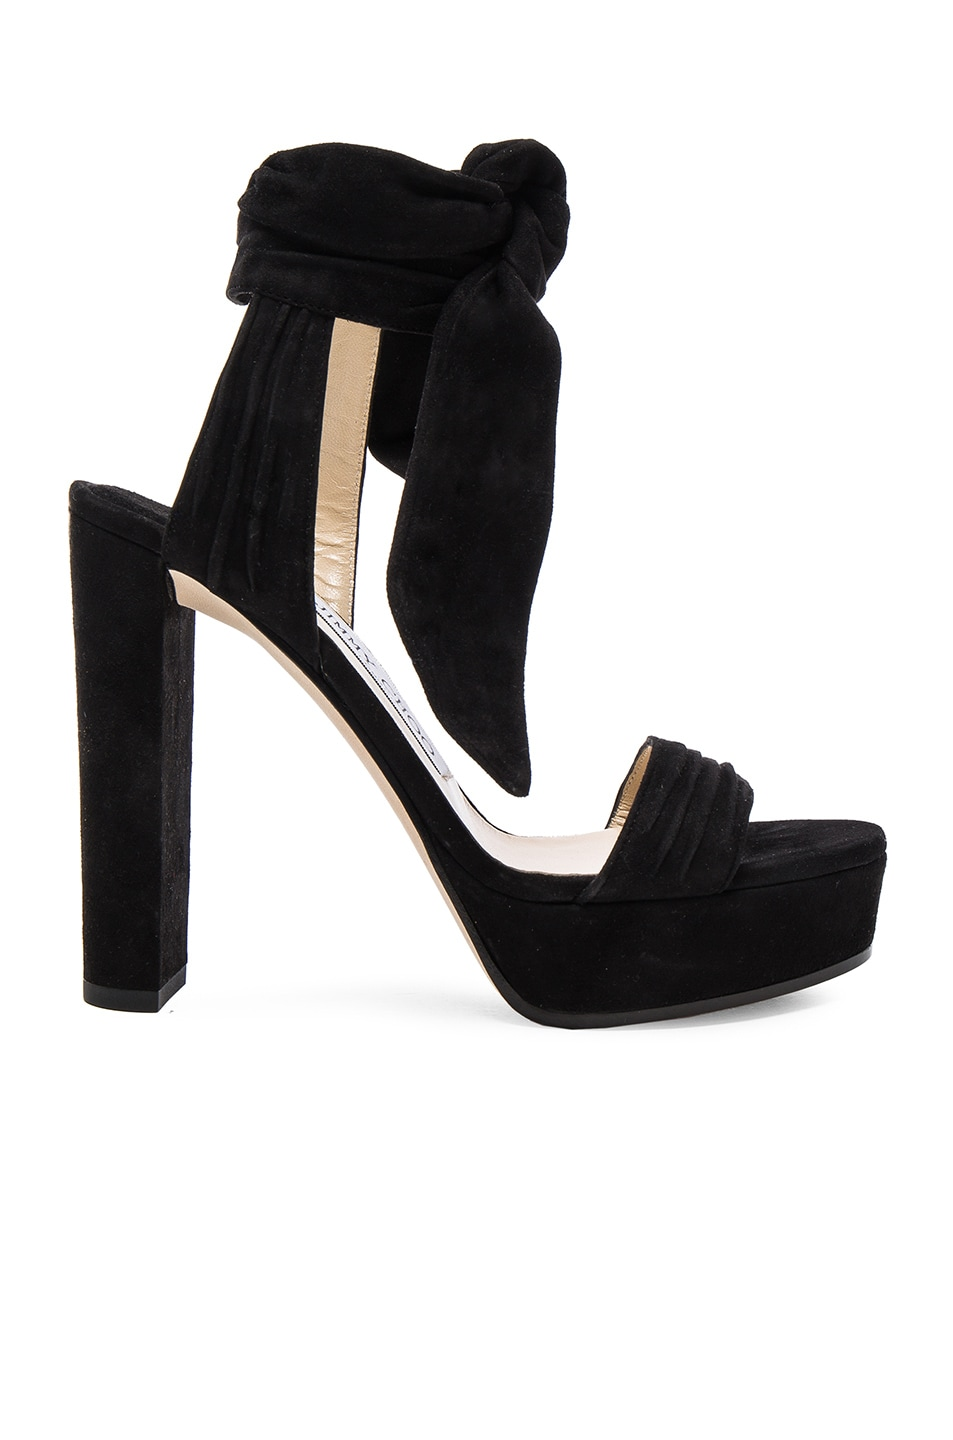 Image 1 of Jimmy Choo Suede Kaytrin Heels in Black